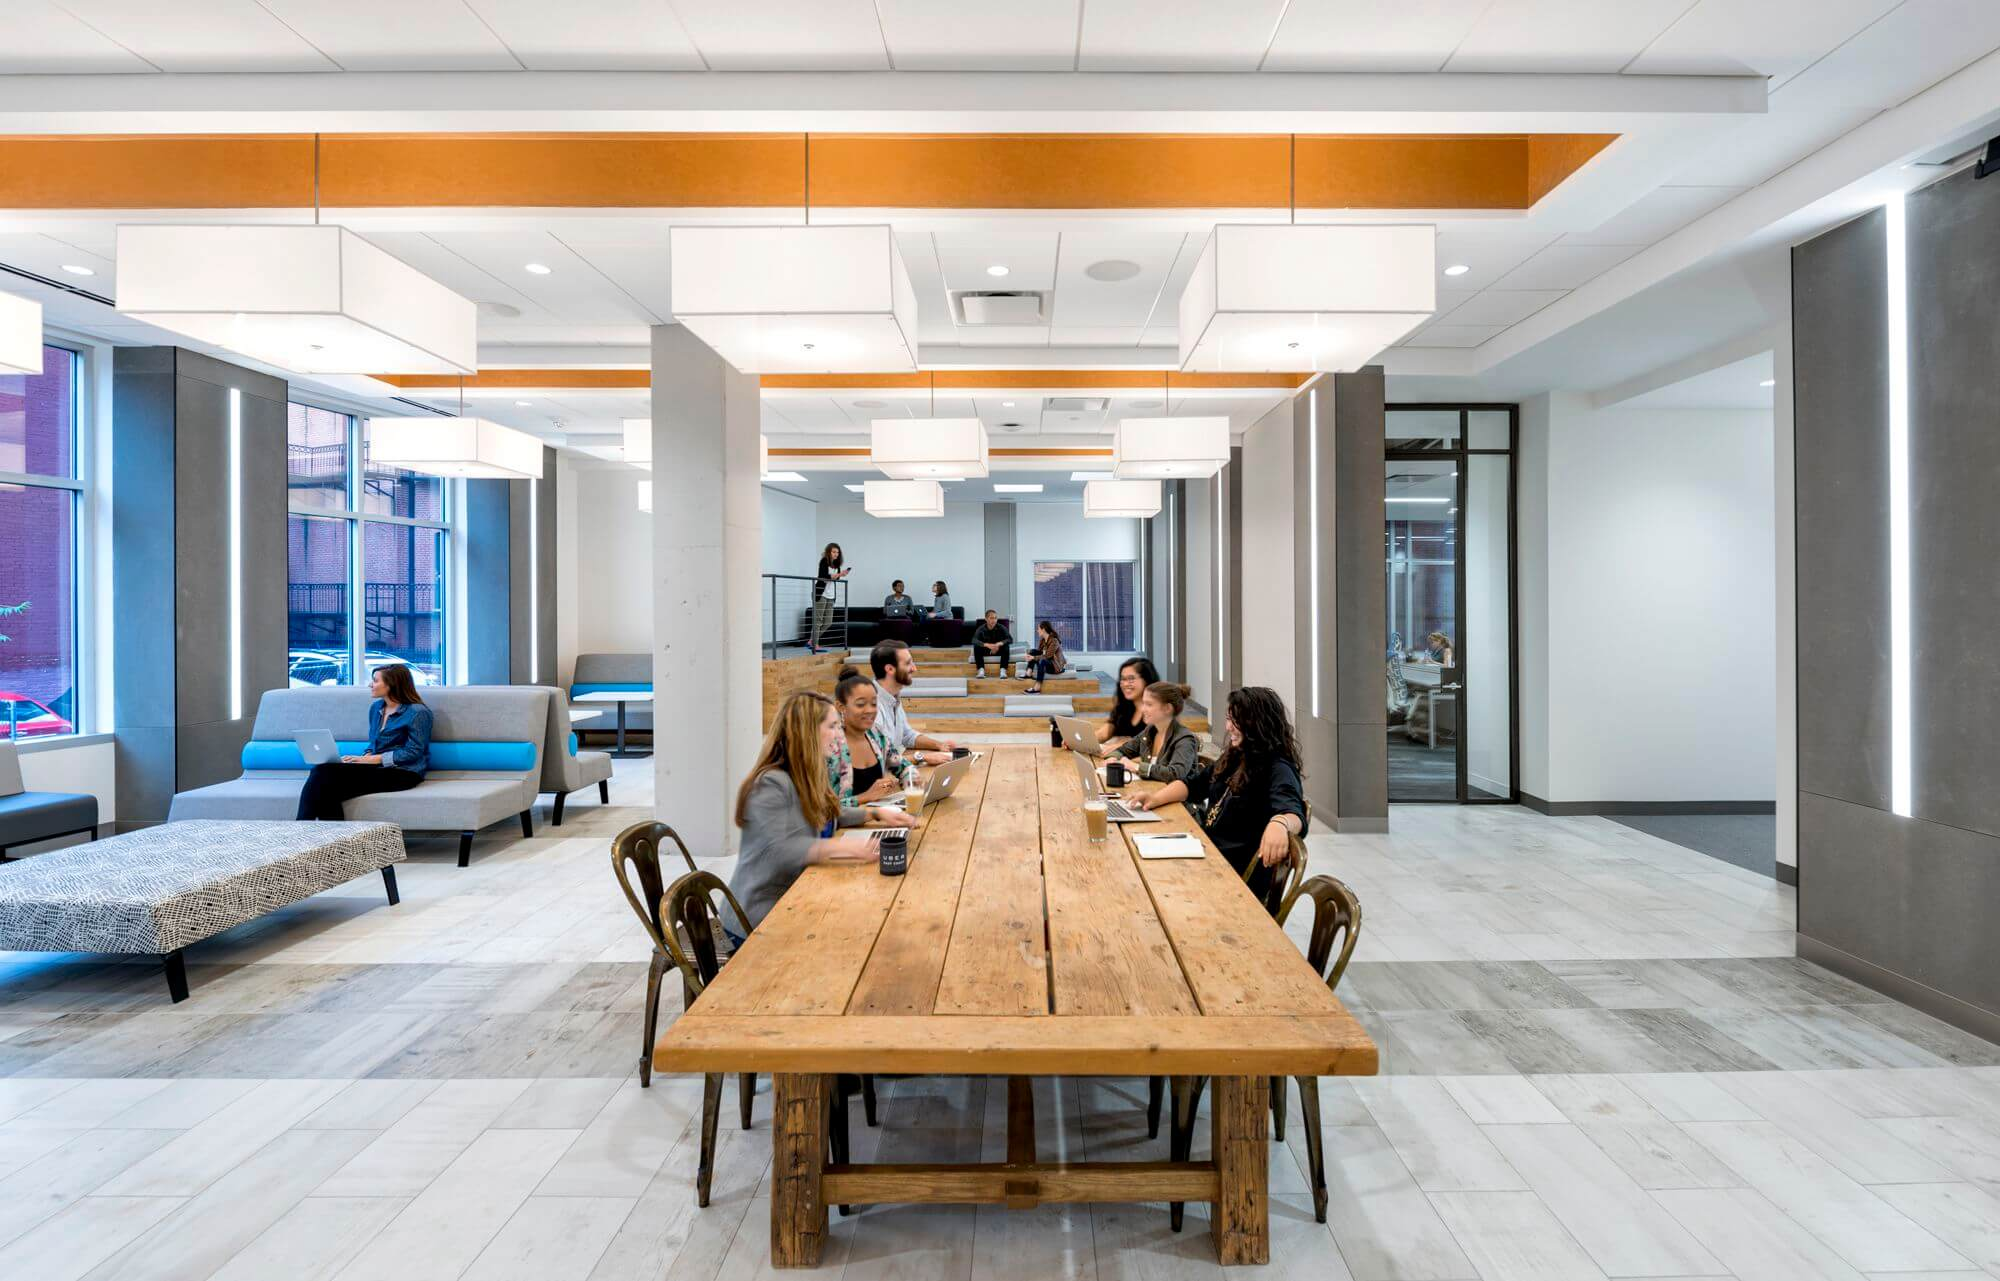 The project provides a lunch room featuring riser style seating and a communal table constructed from the floor joists salvaged from the townhouses.  The fully suspended reception desk brings together the steel, concrete and glass elements.